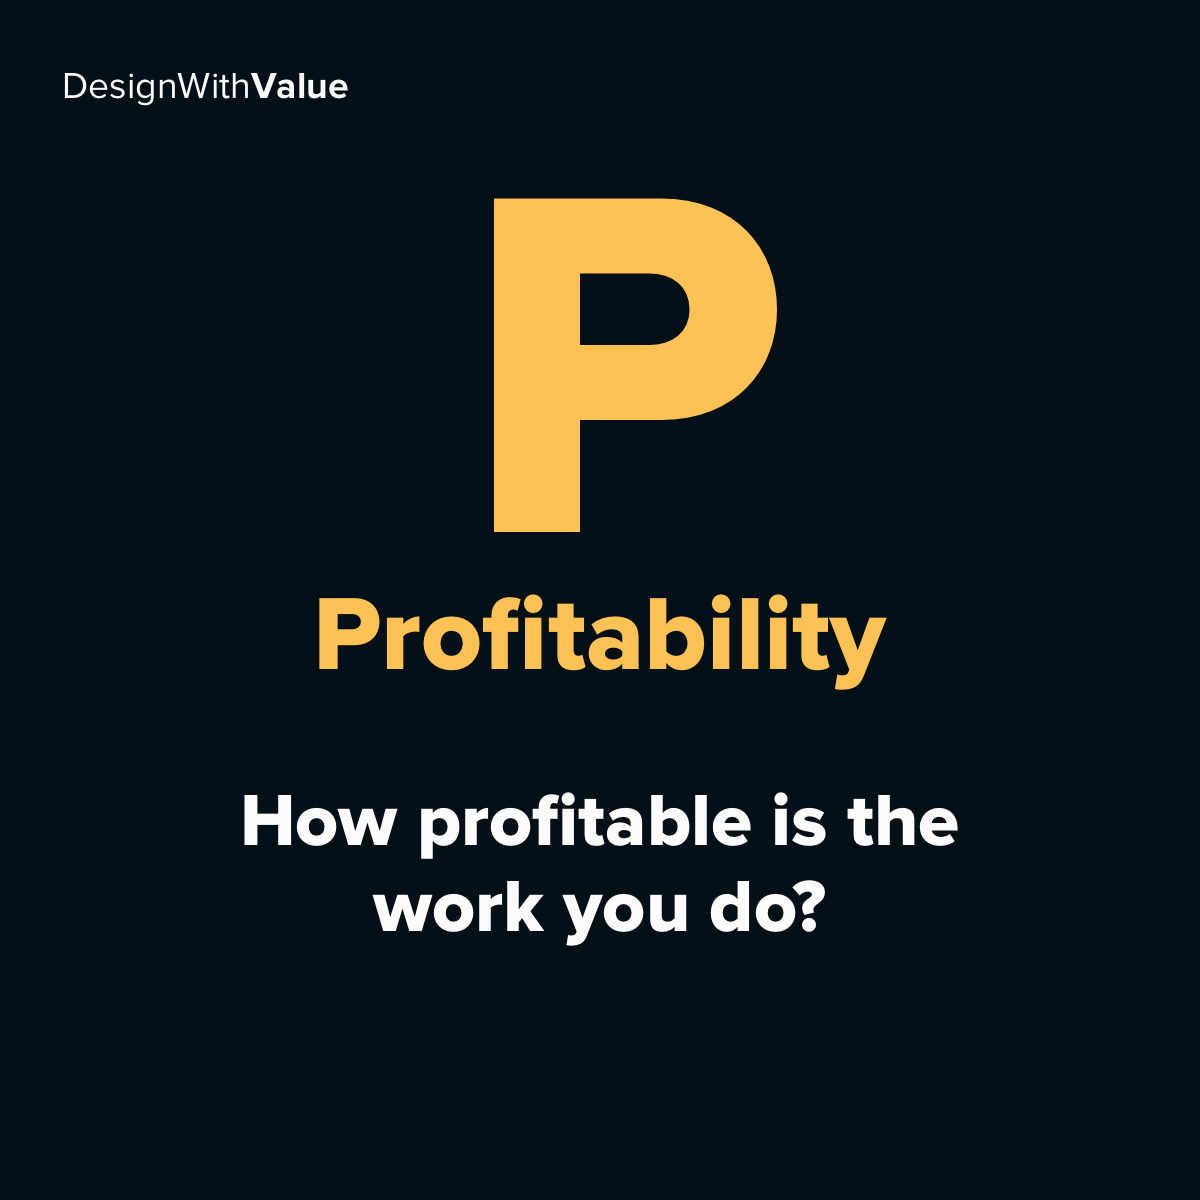 P = Profitability. How profitable is the work you do?